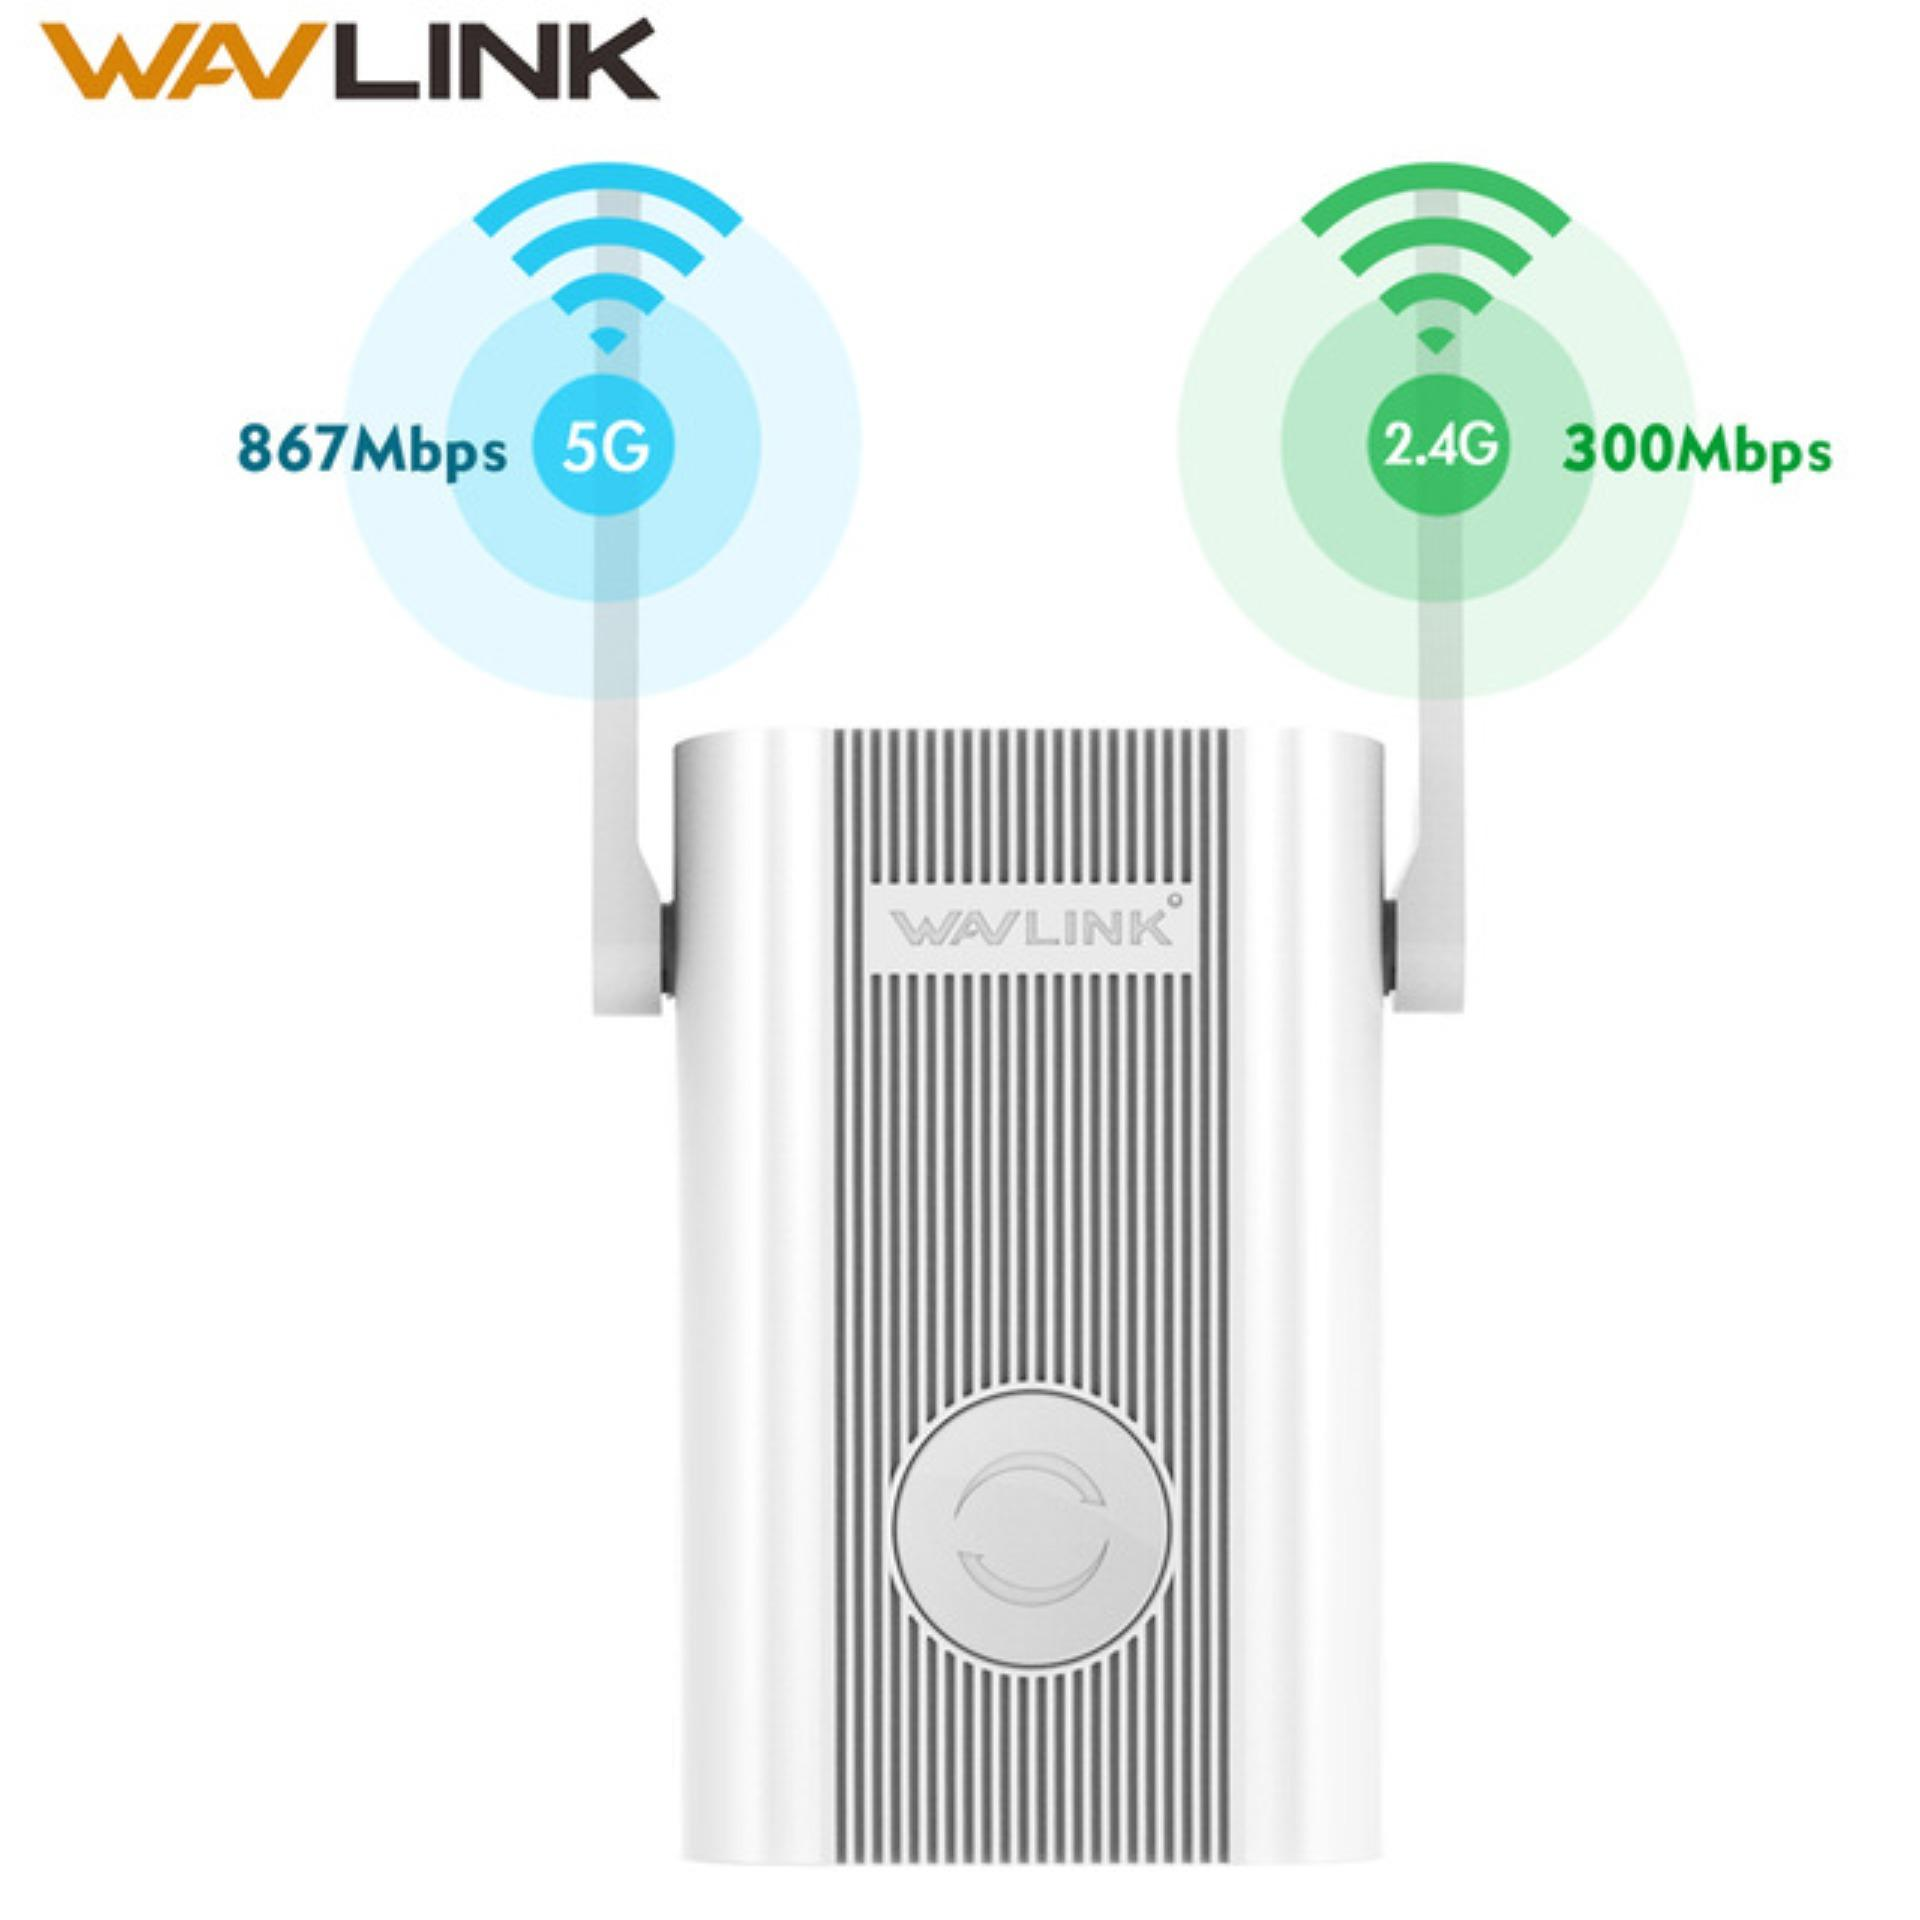 Wavlink AC1200 Dual Band WiFi Range Extender, WiFi Repeater/AP/ Wireless  Signal Booster, complies with IEEE 802 11 ac/a/b/g/n standards